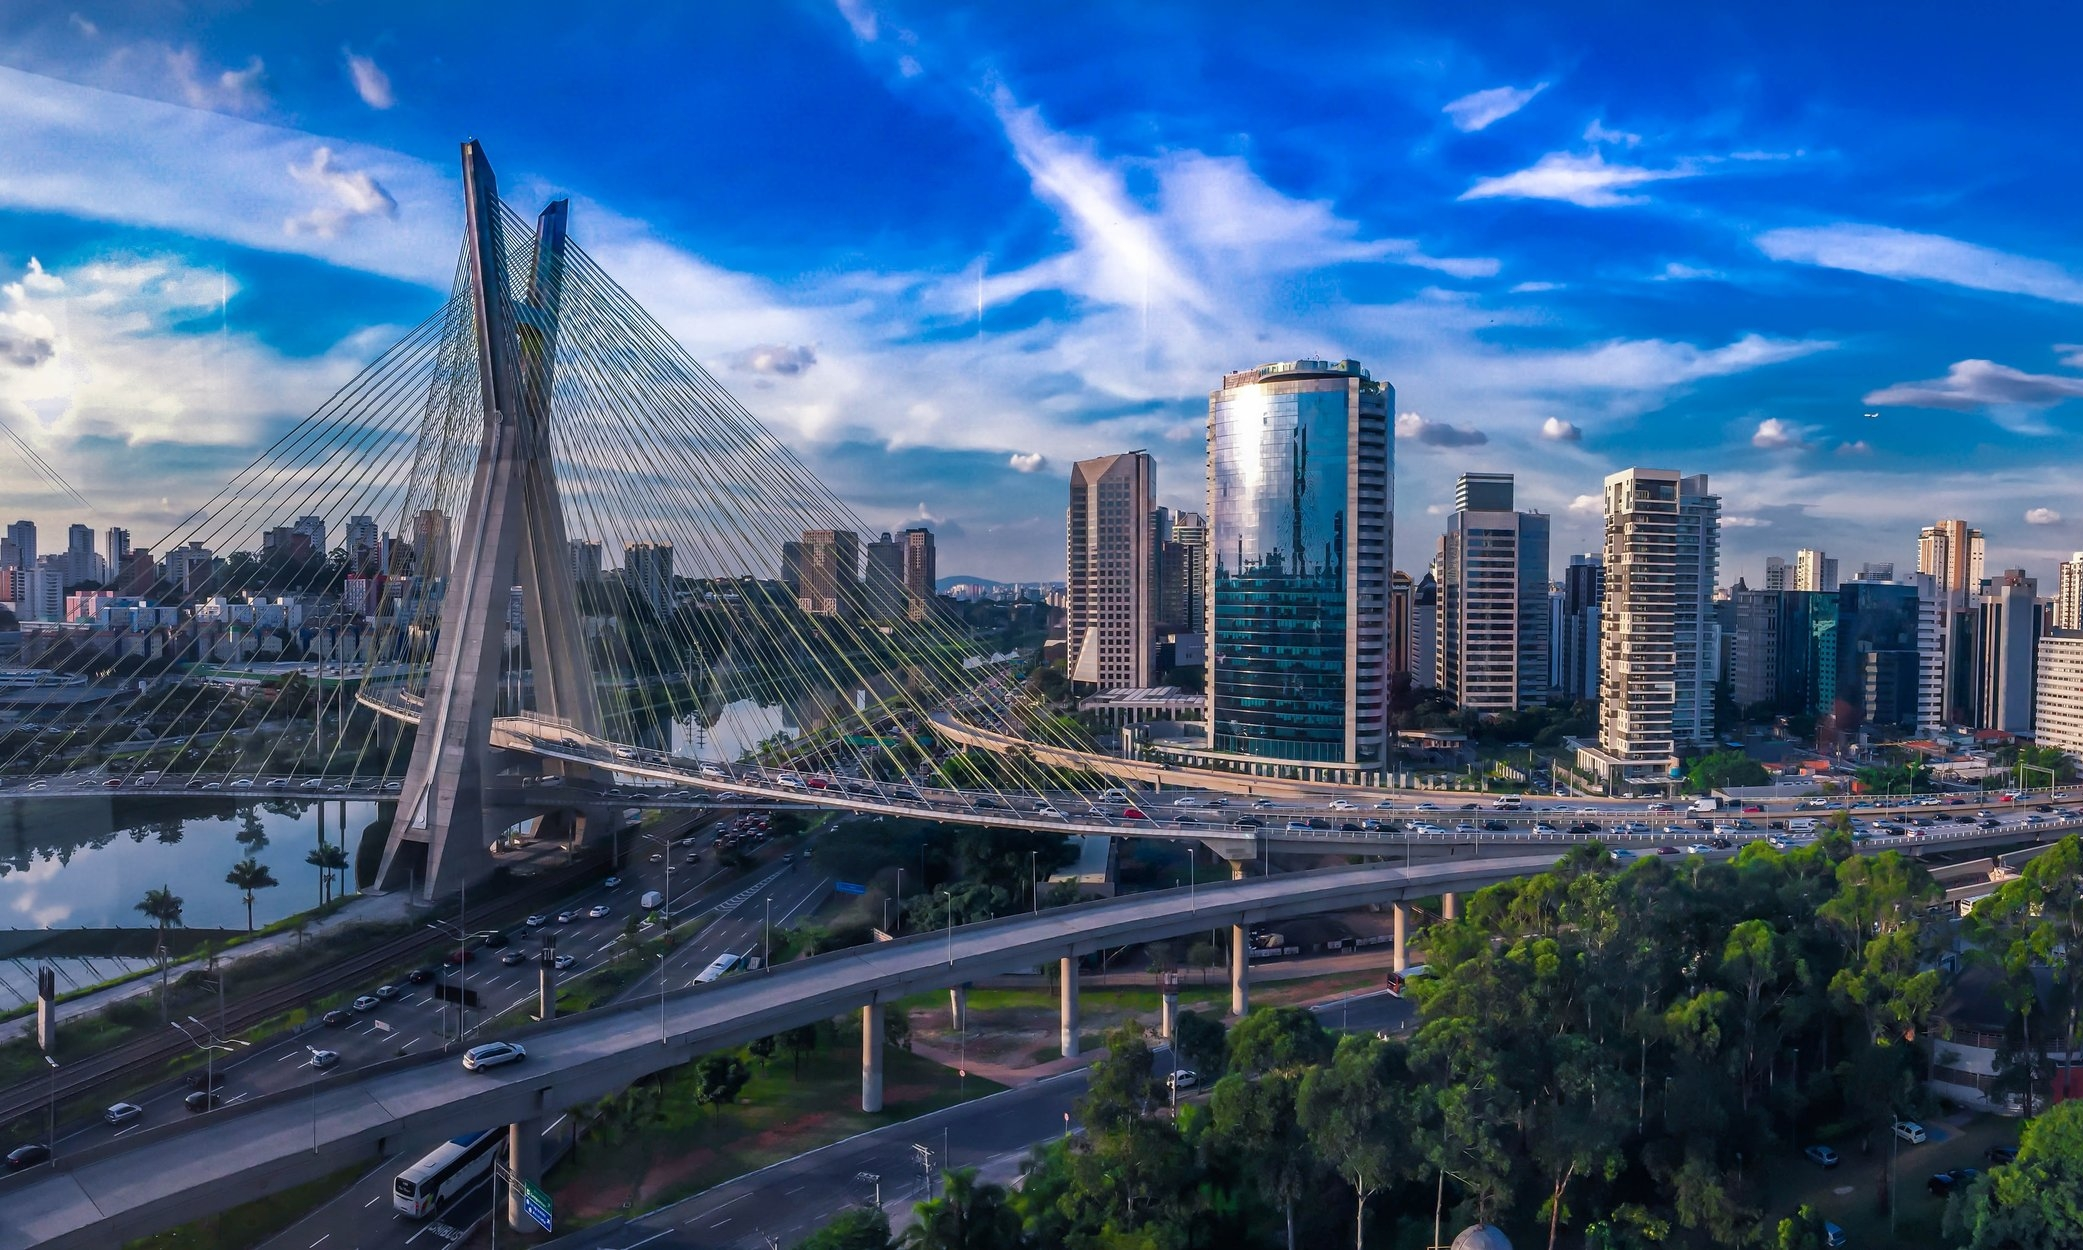 Infrastructure Investment Trusts